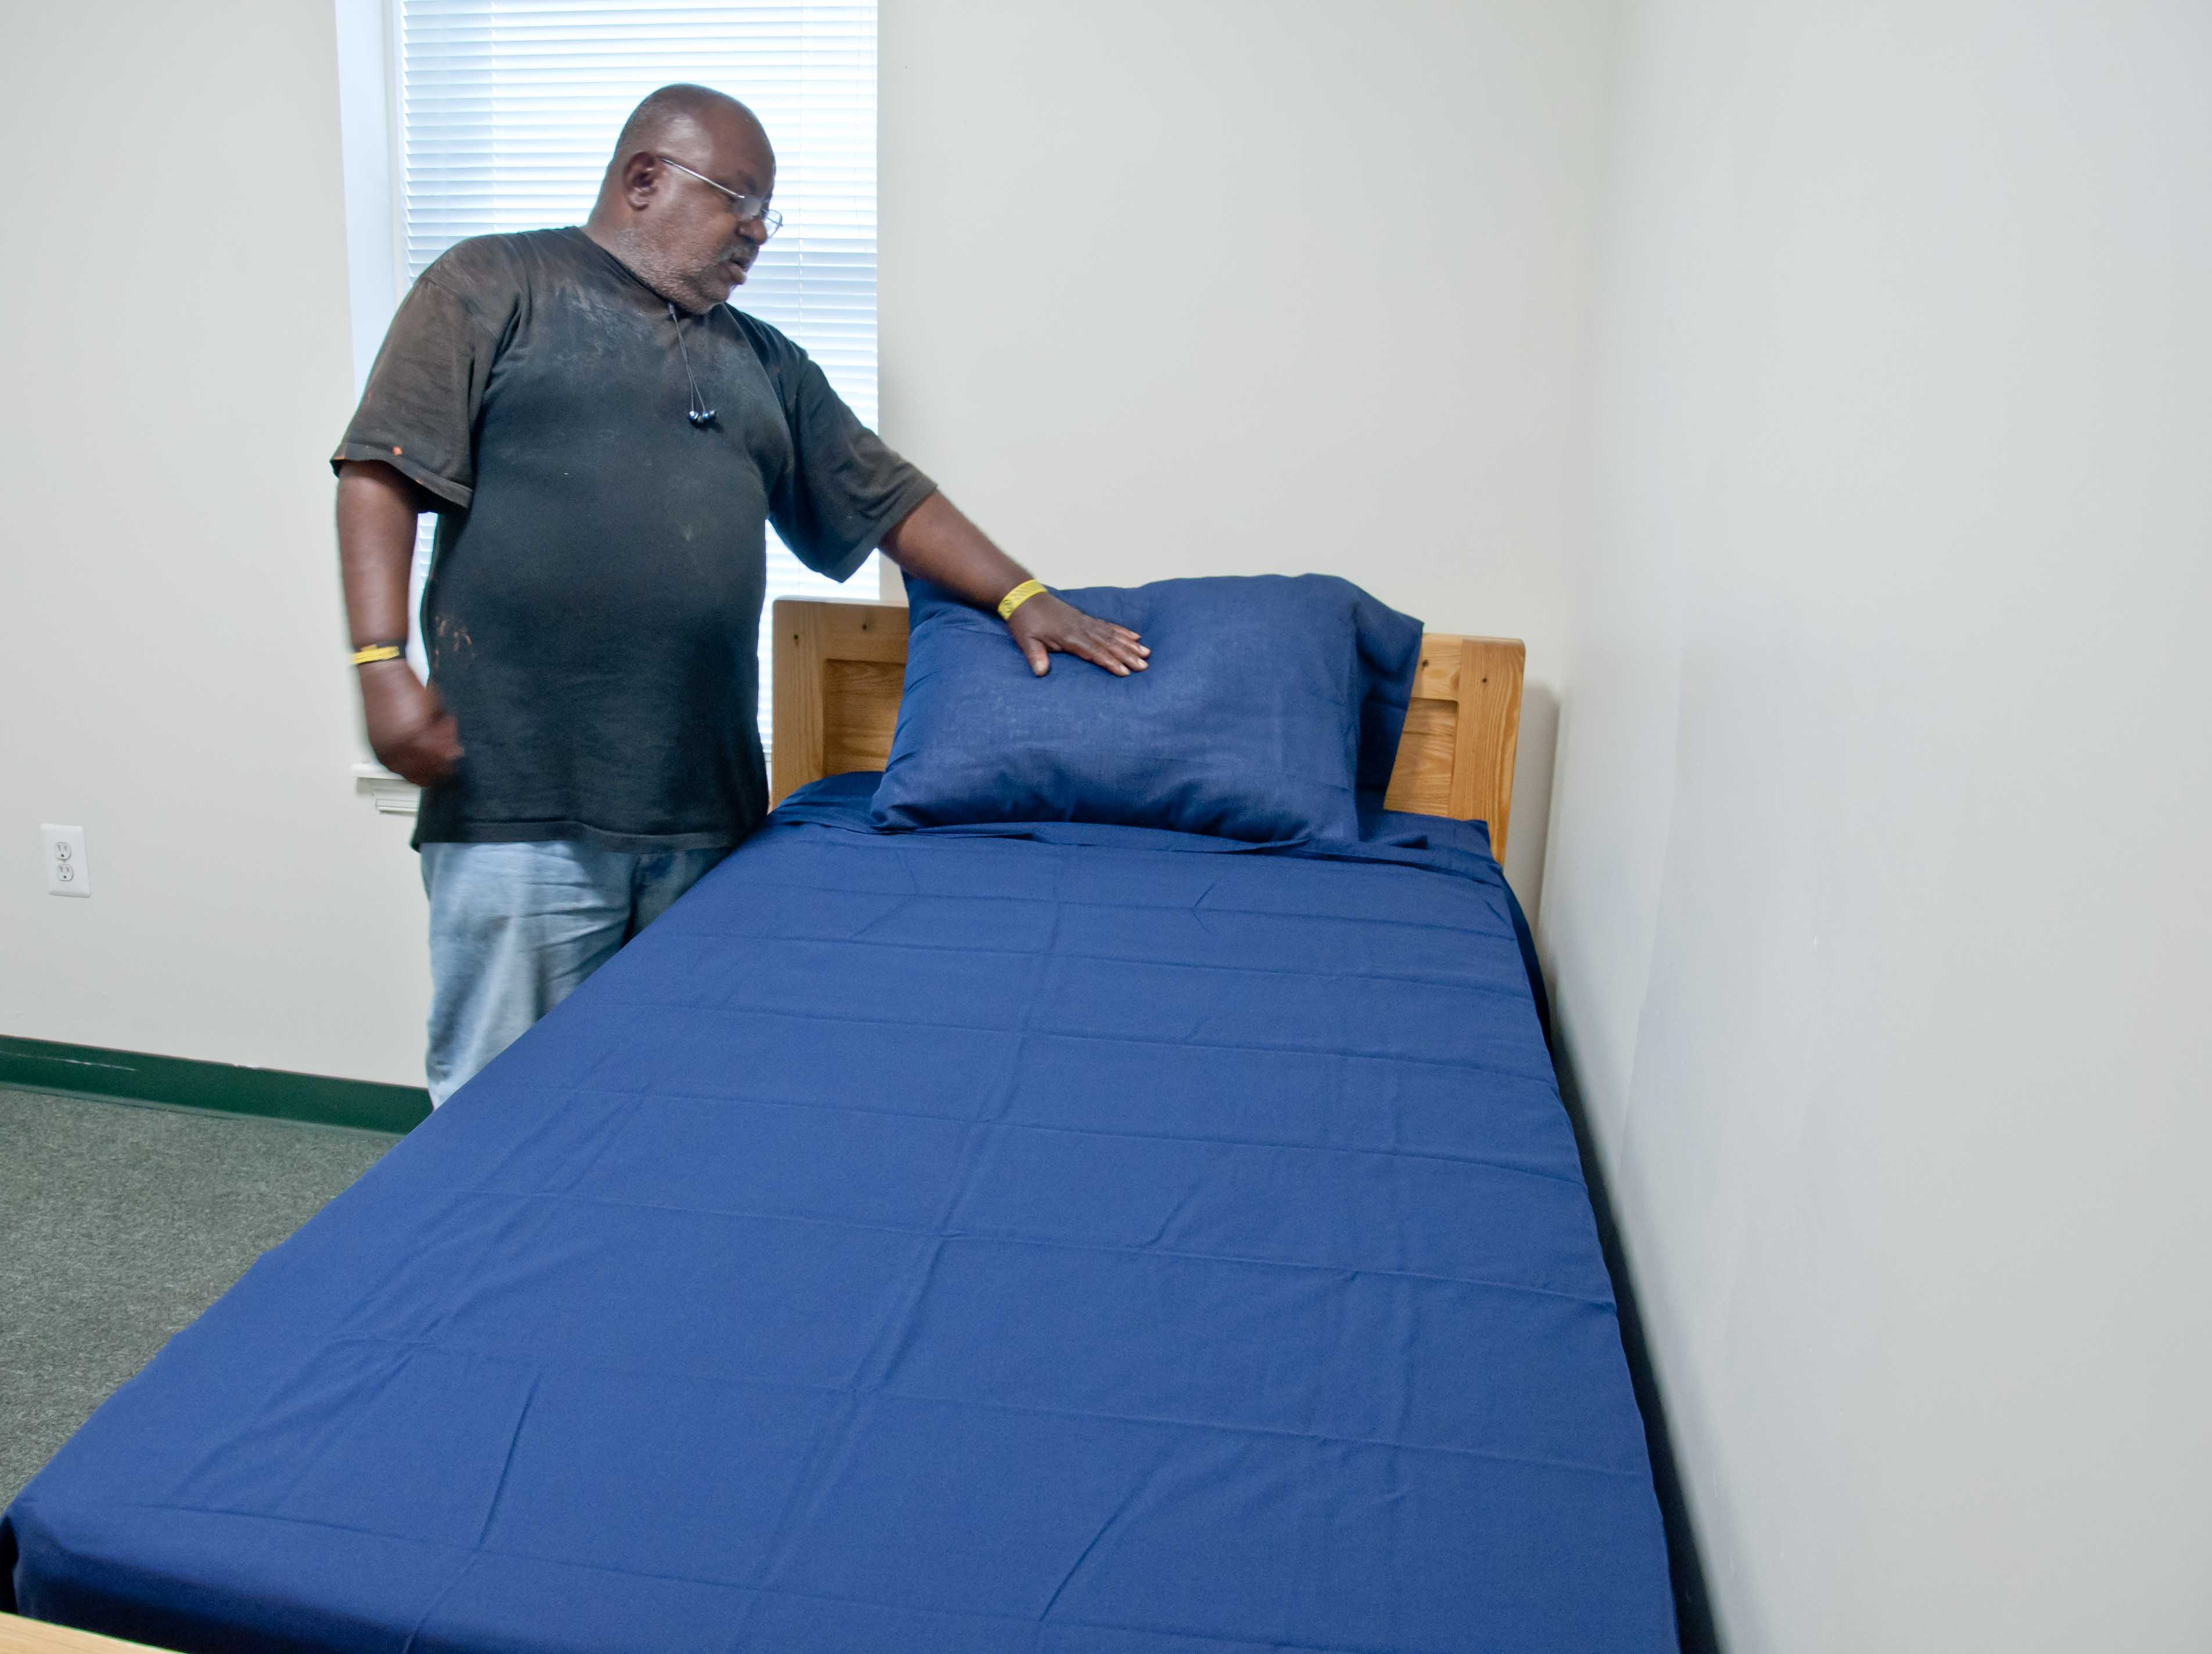 Anthony making his own bed for the first time in over a decade.